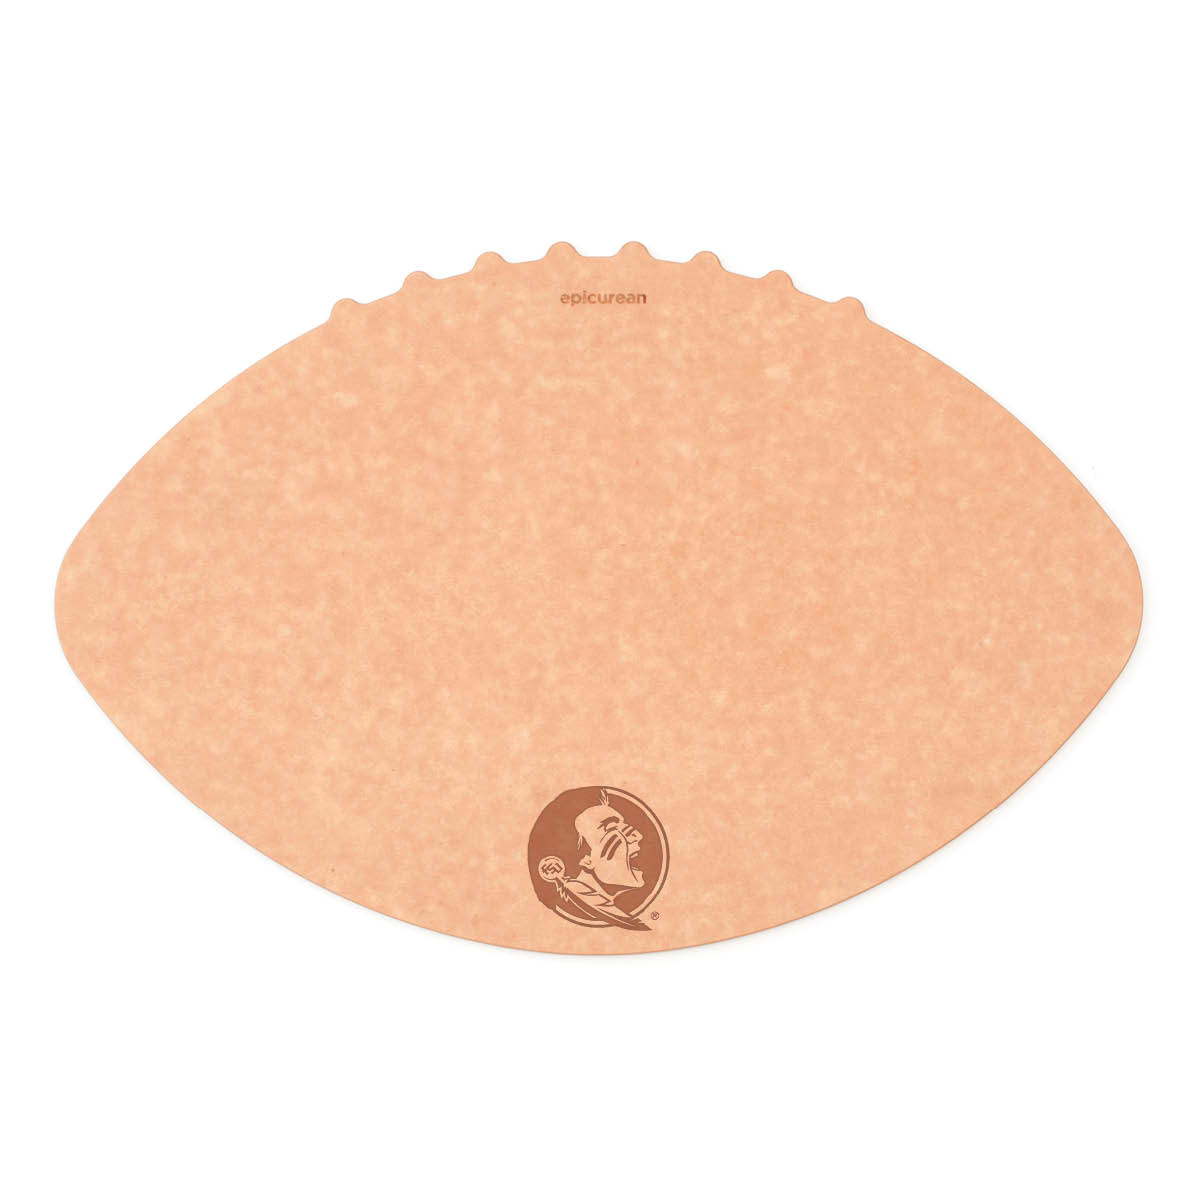 Epicurean Florida State University 16 x 10.5 Inch Football Cutting and Serving Board